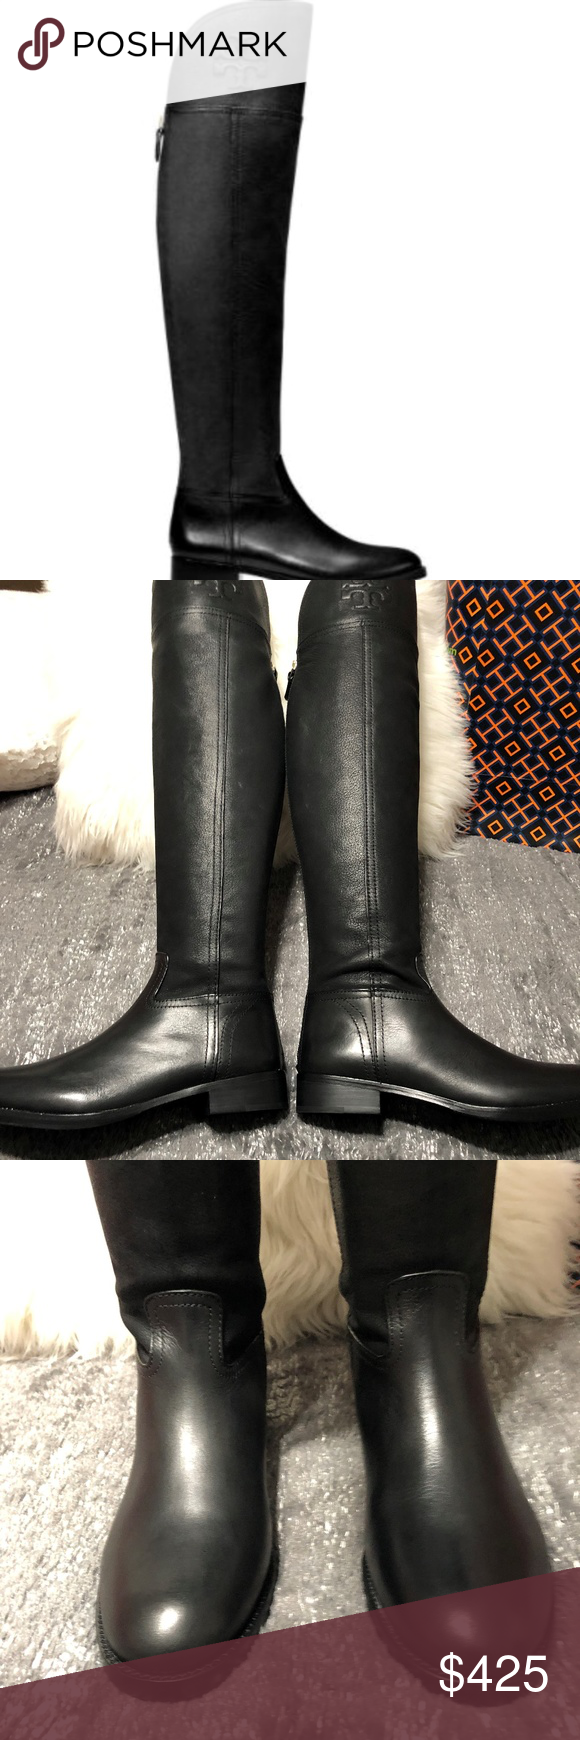 bd6df699532 Tory Burch Women s Simone Over The Knee Boot 7 I received these as a gift  for